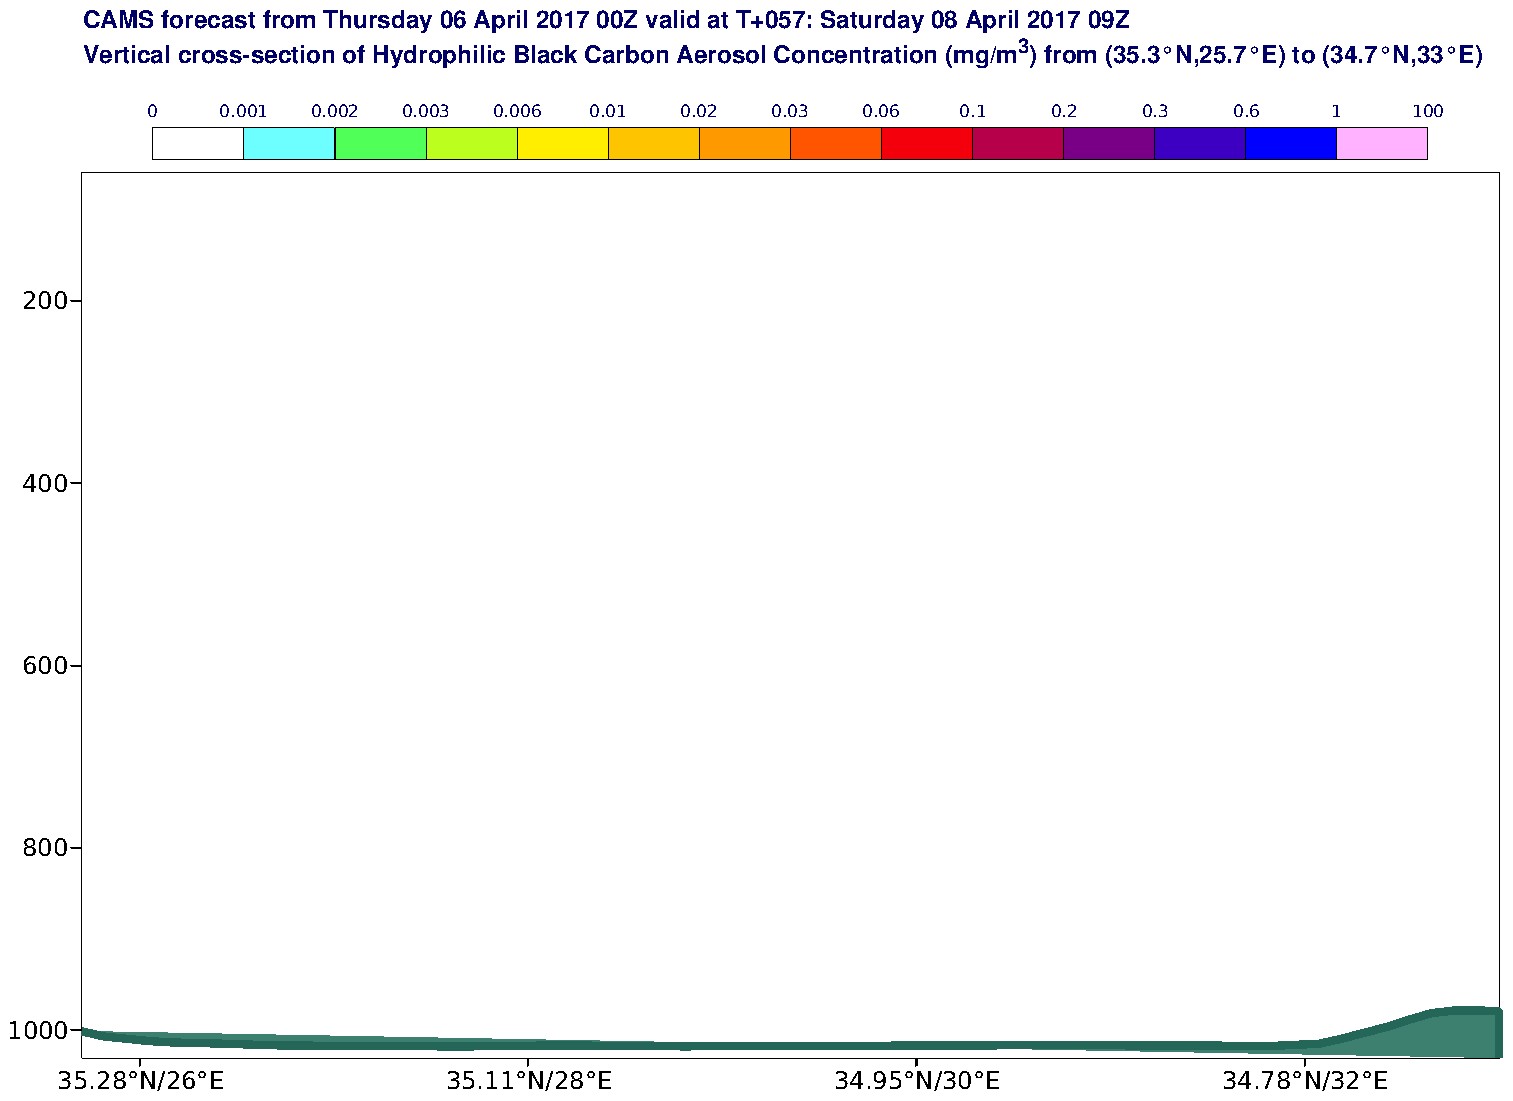 Vertical cross-section of Hydrophilic Black Carbon Aerosol Concentration (mg/m3) valid at T57 - 2017-04-08 09:00